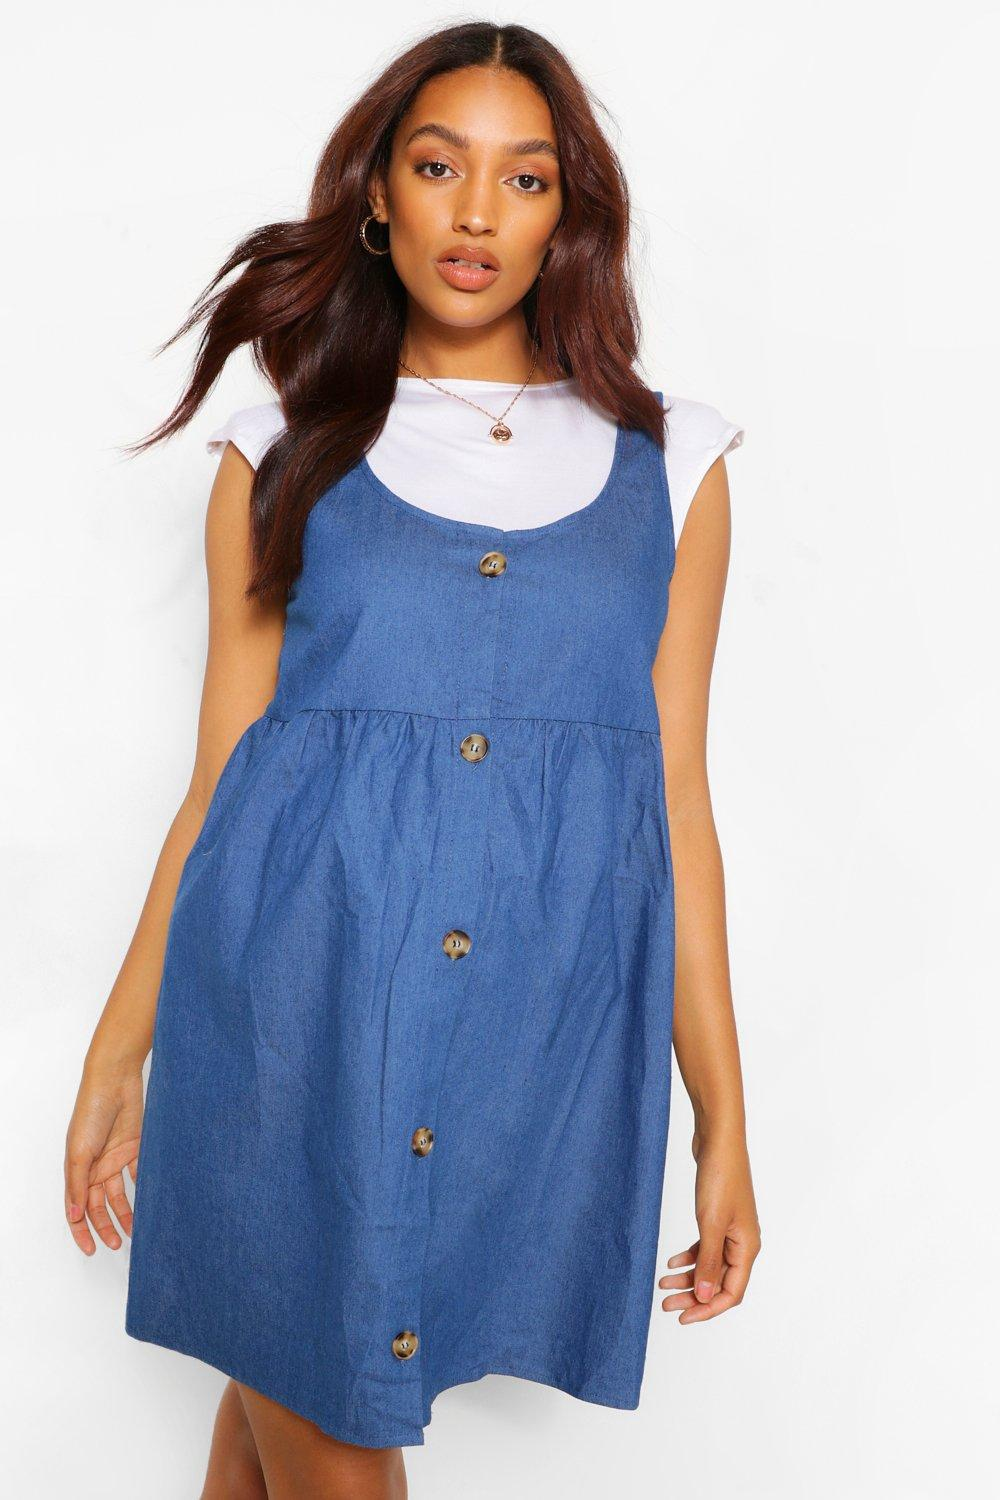 Vintage Maternity Dresses and Clothes Womens Maternity Button Chambray Smock Pinafore Dress - Blue - 12 $19.20 AT vintagedancer.com